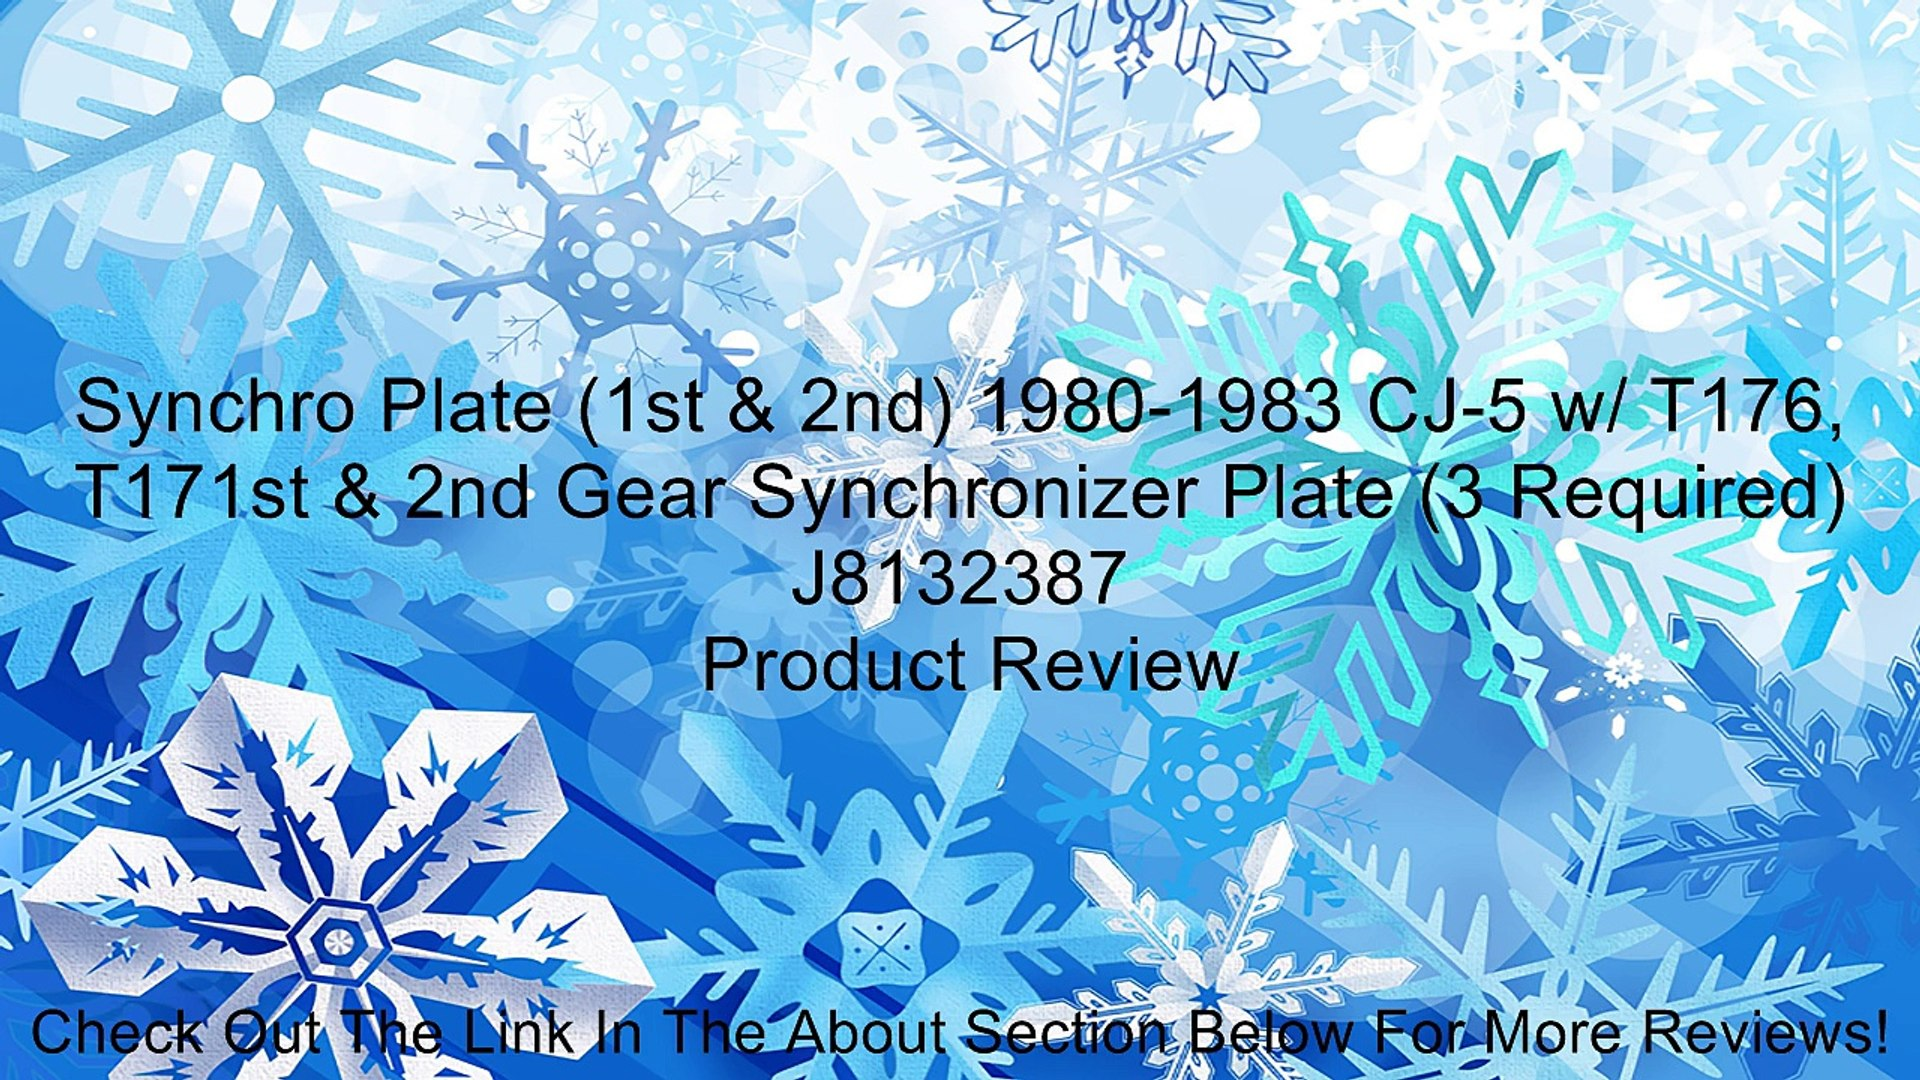 1st /& 2nd Synchro Plate 3 Required J8132387 1980-1983 CJ-5 w// T176 T171st /& 2nd Gear Synchronizer Plate